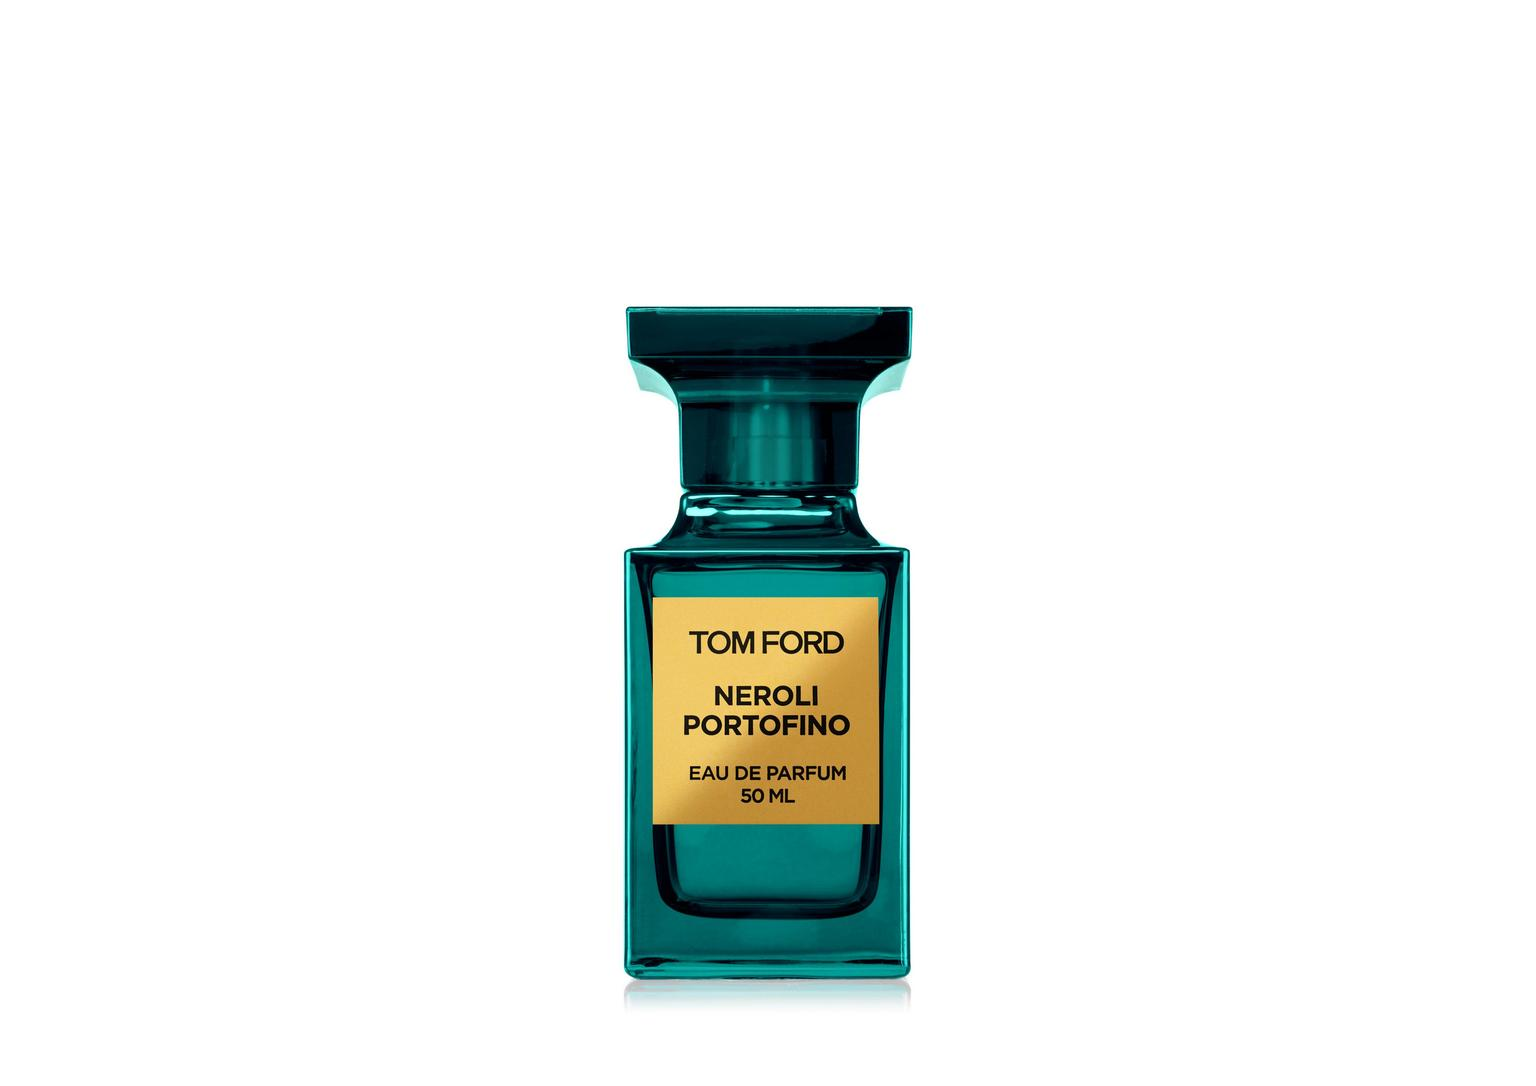 tom ford neroli portofino fragrance. Black Bedroom Furniture Sets. Home Design Ideas